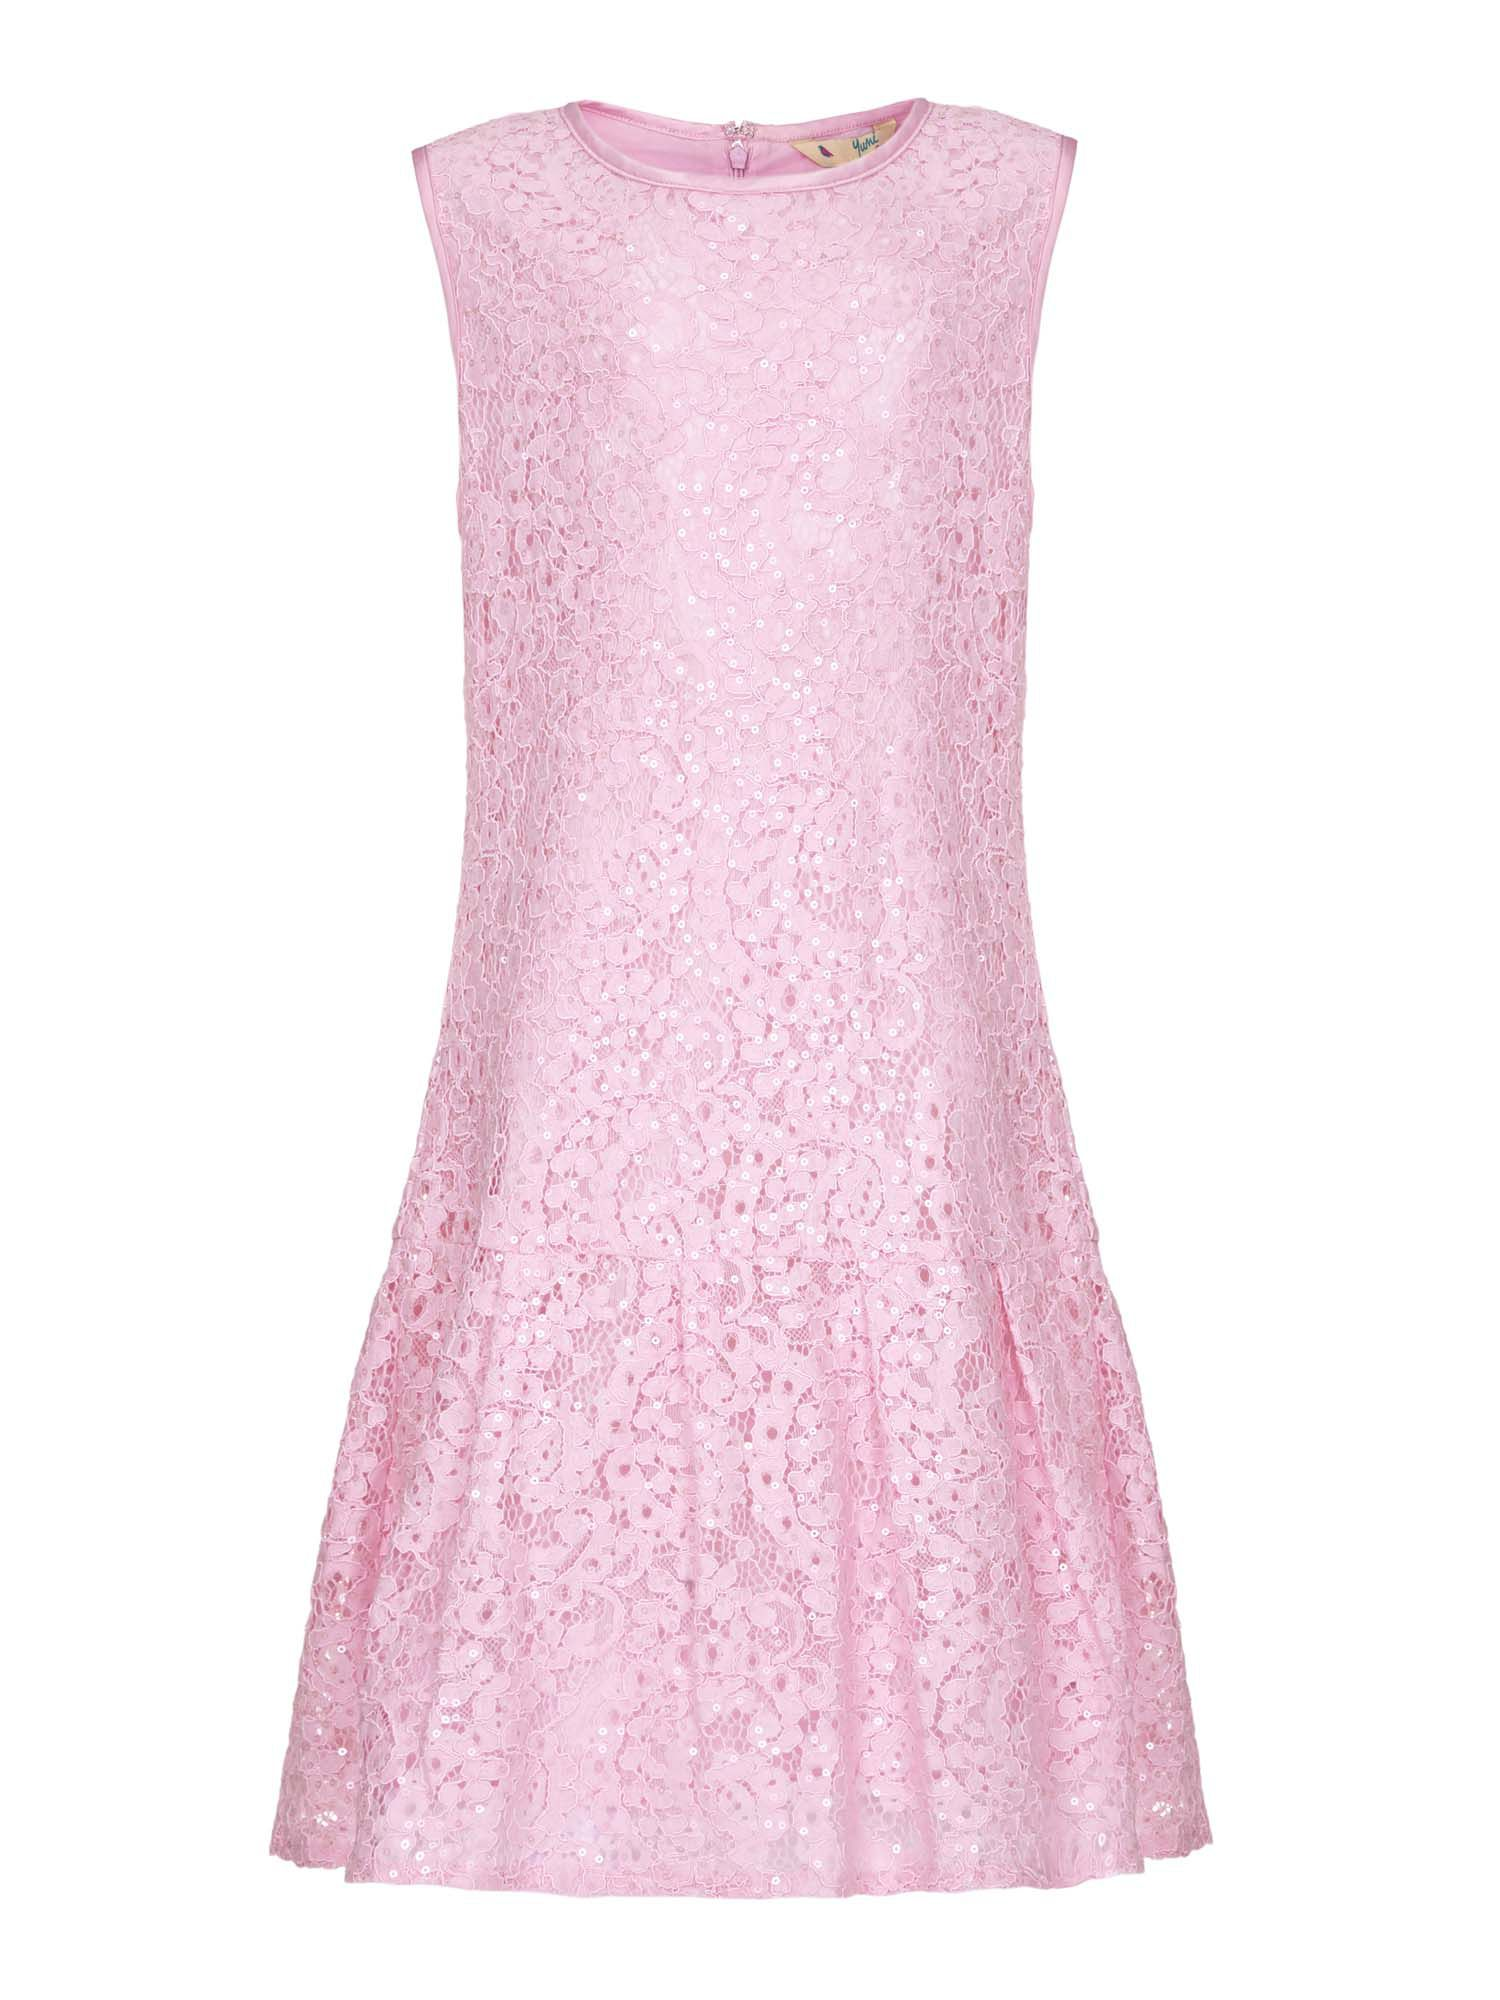 1920s Children Fashions: Girls, Boys, Baby Costumes Yumi Girls Drop Waist Lace Dress Pink £39.00 AT vintagedancer.com